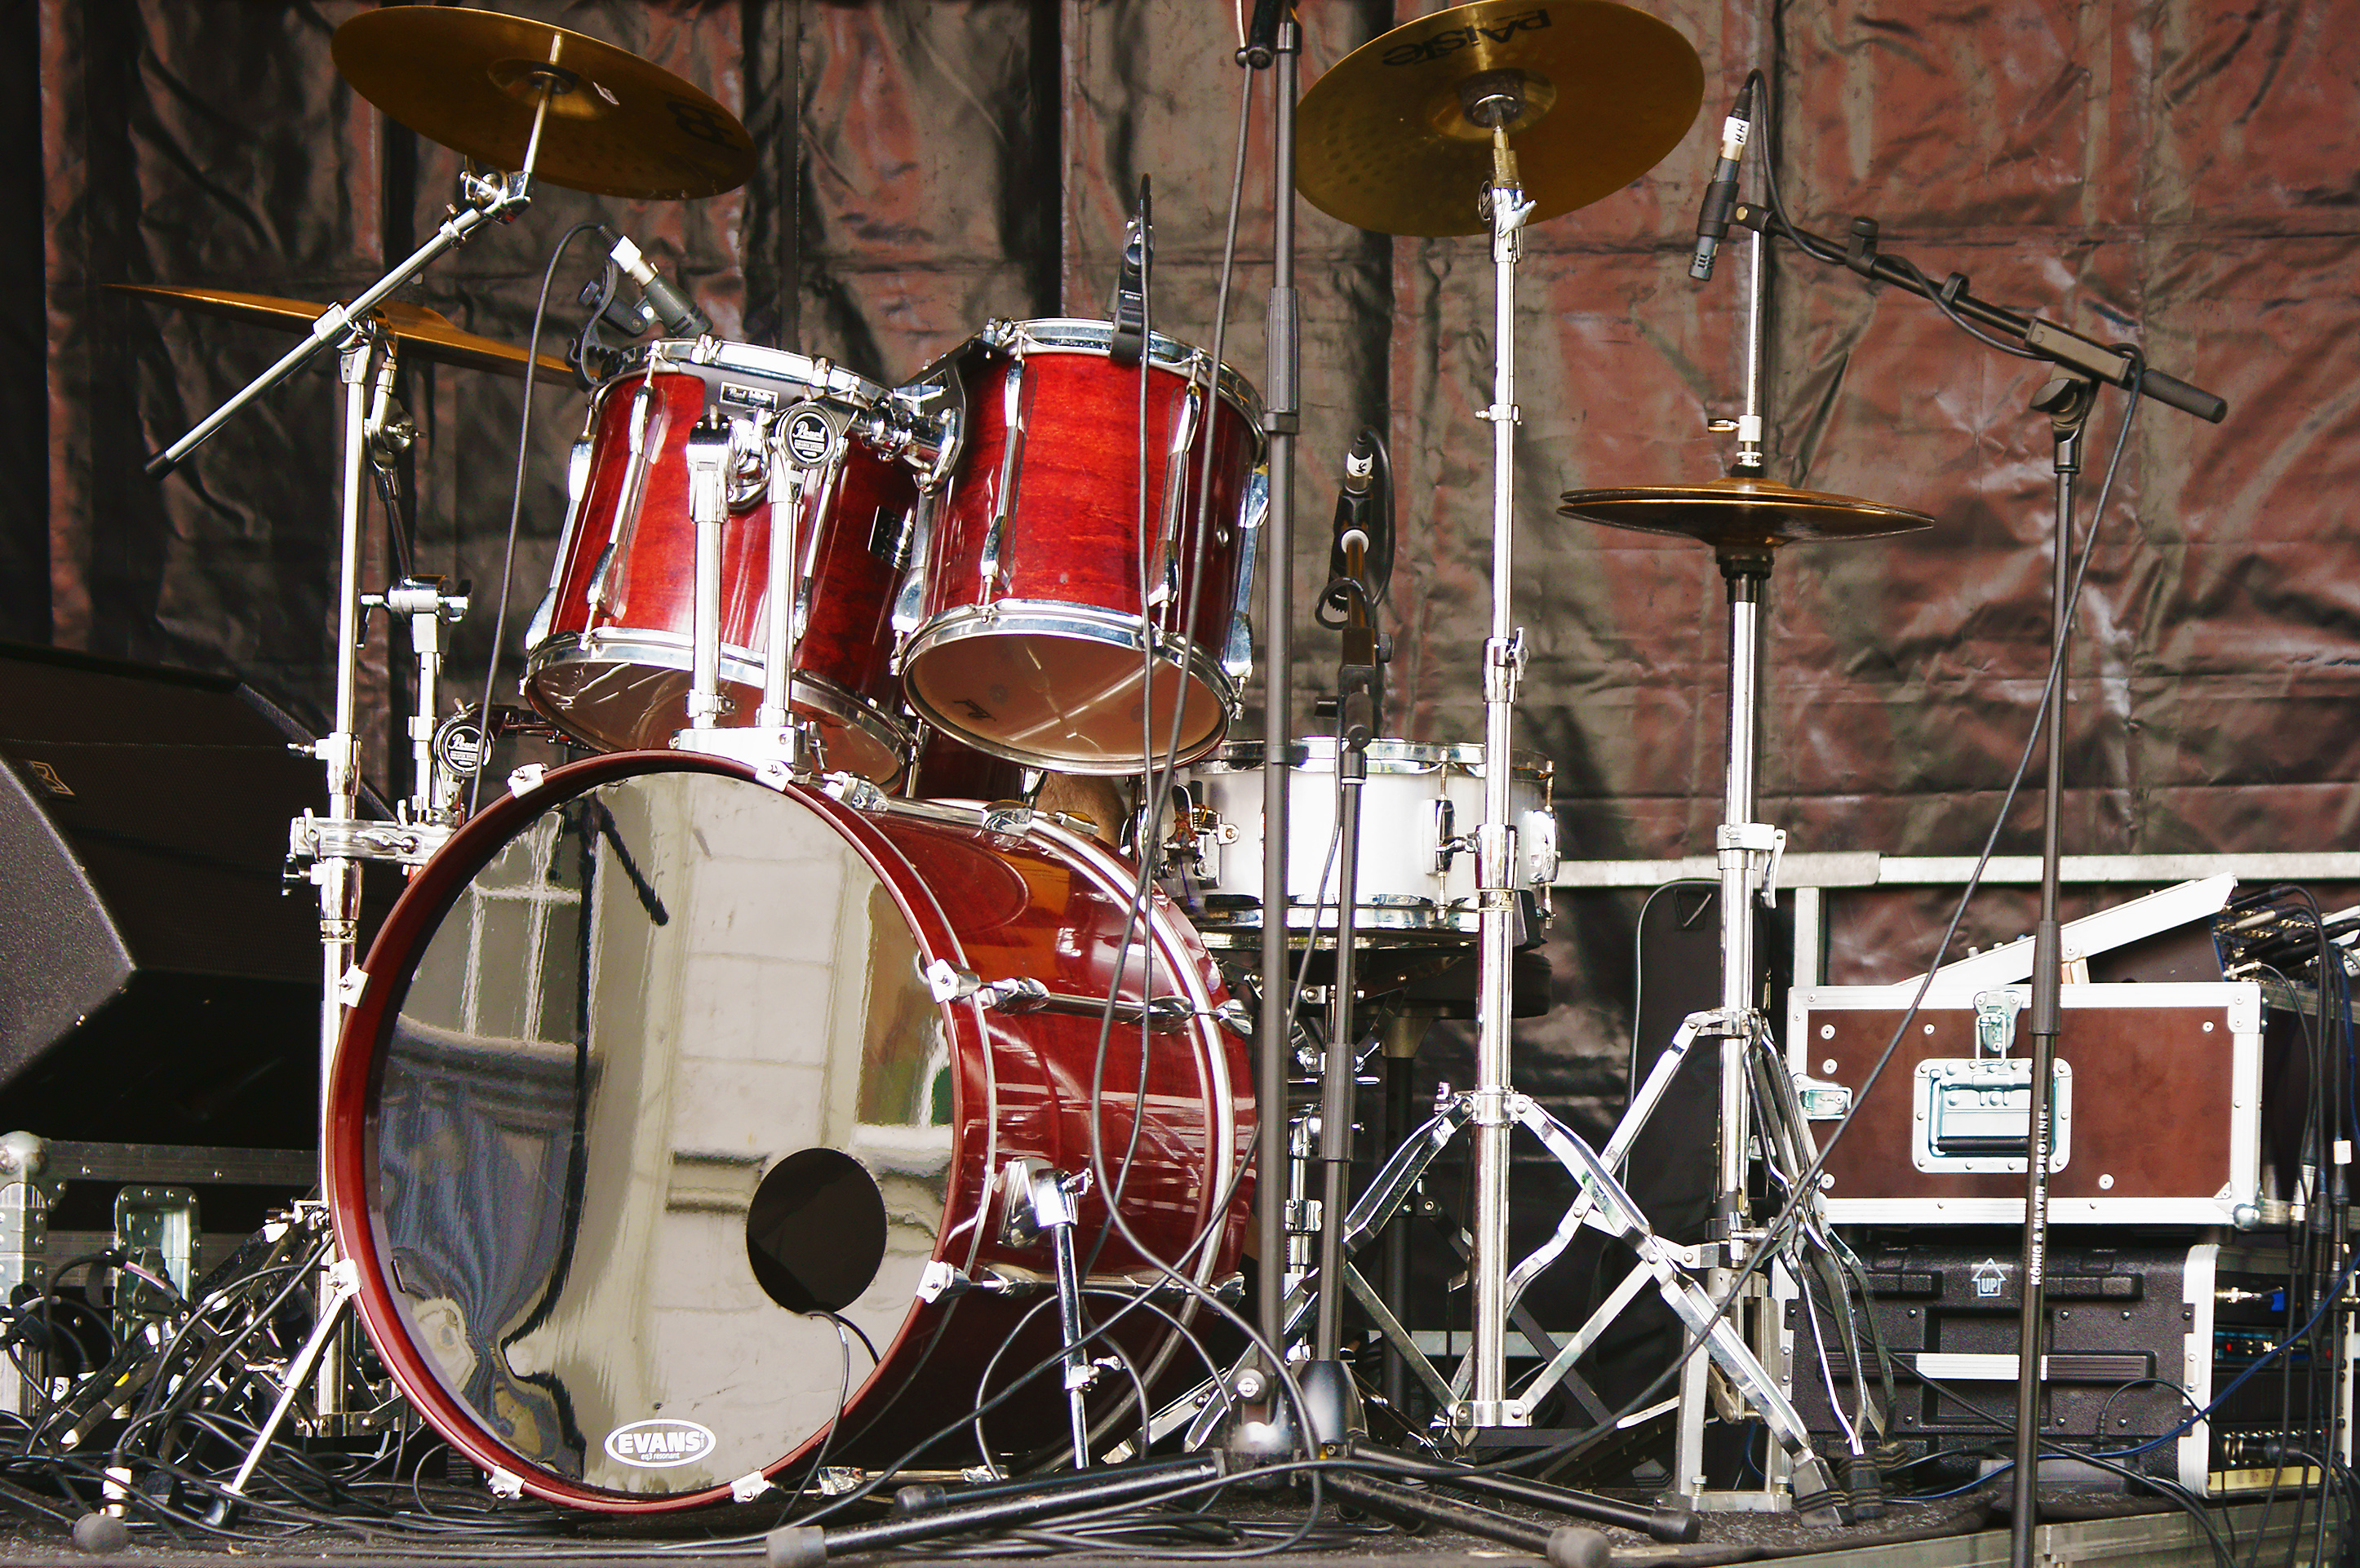 We Hit That - Drumset, Mallet & Percussion